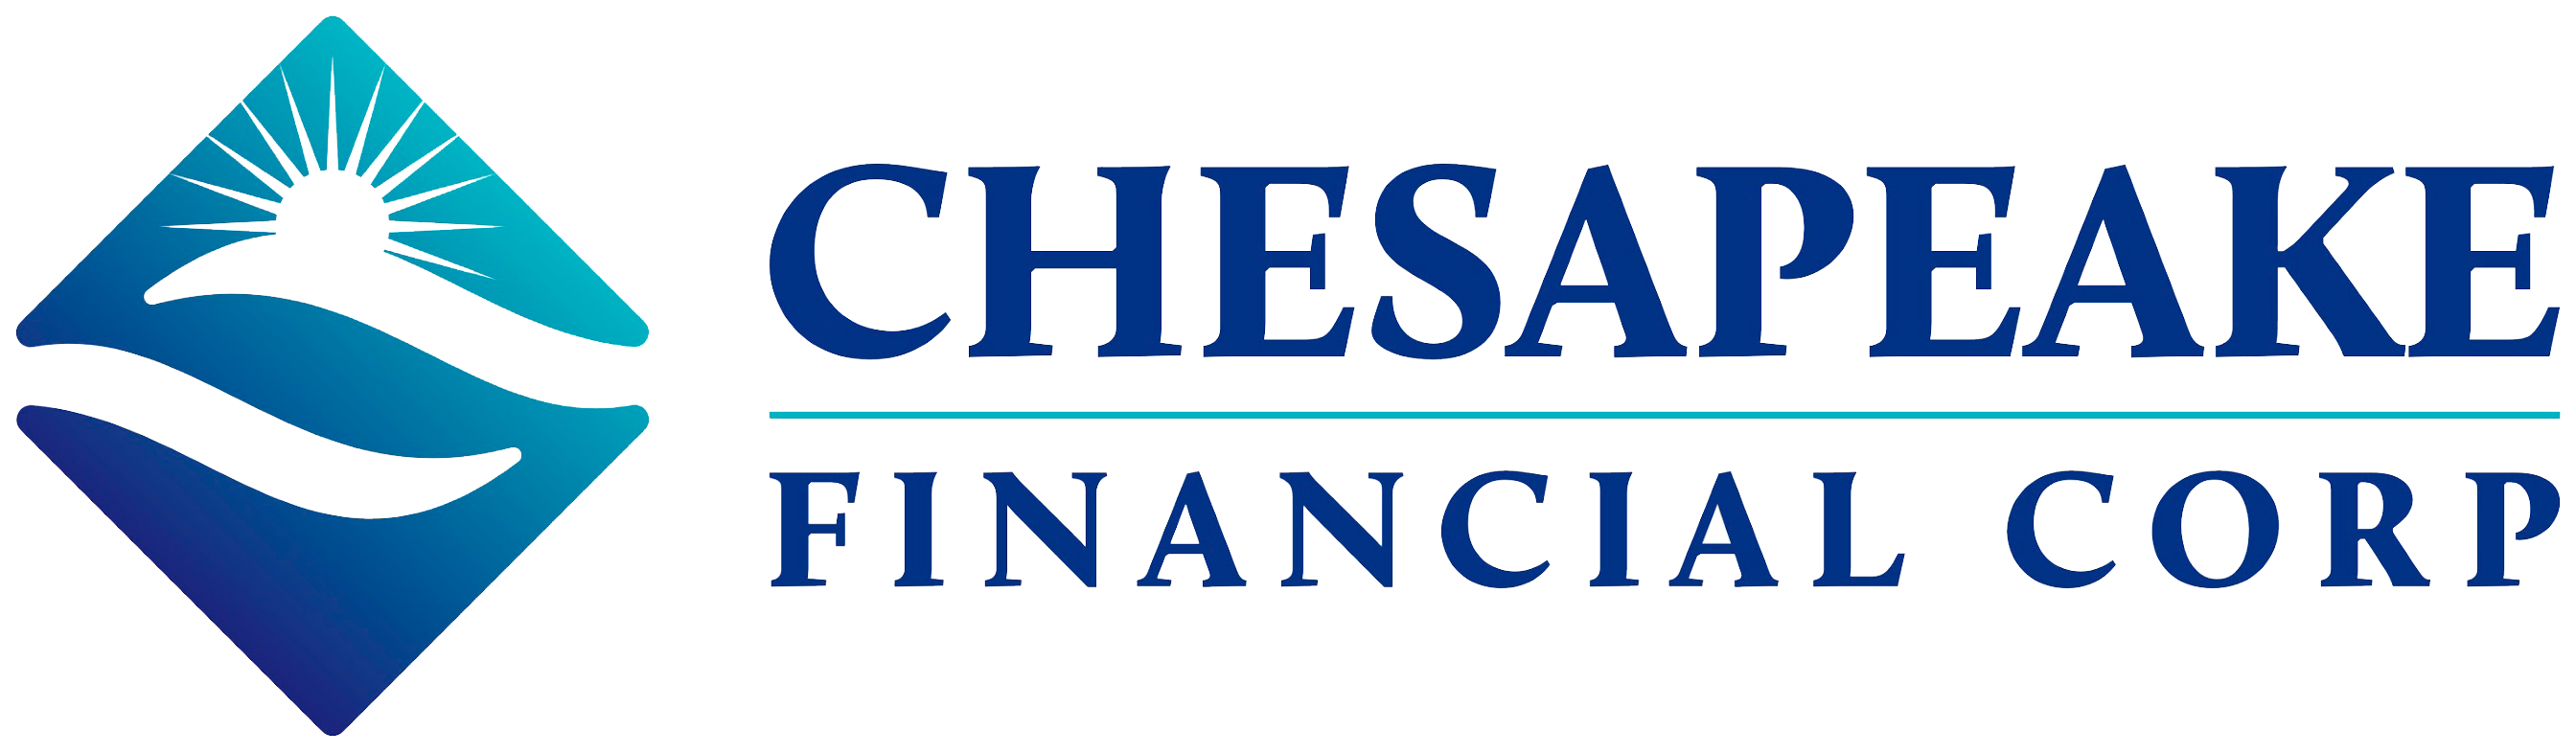 Chesapeake Financial Corp.